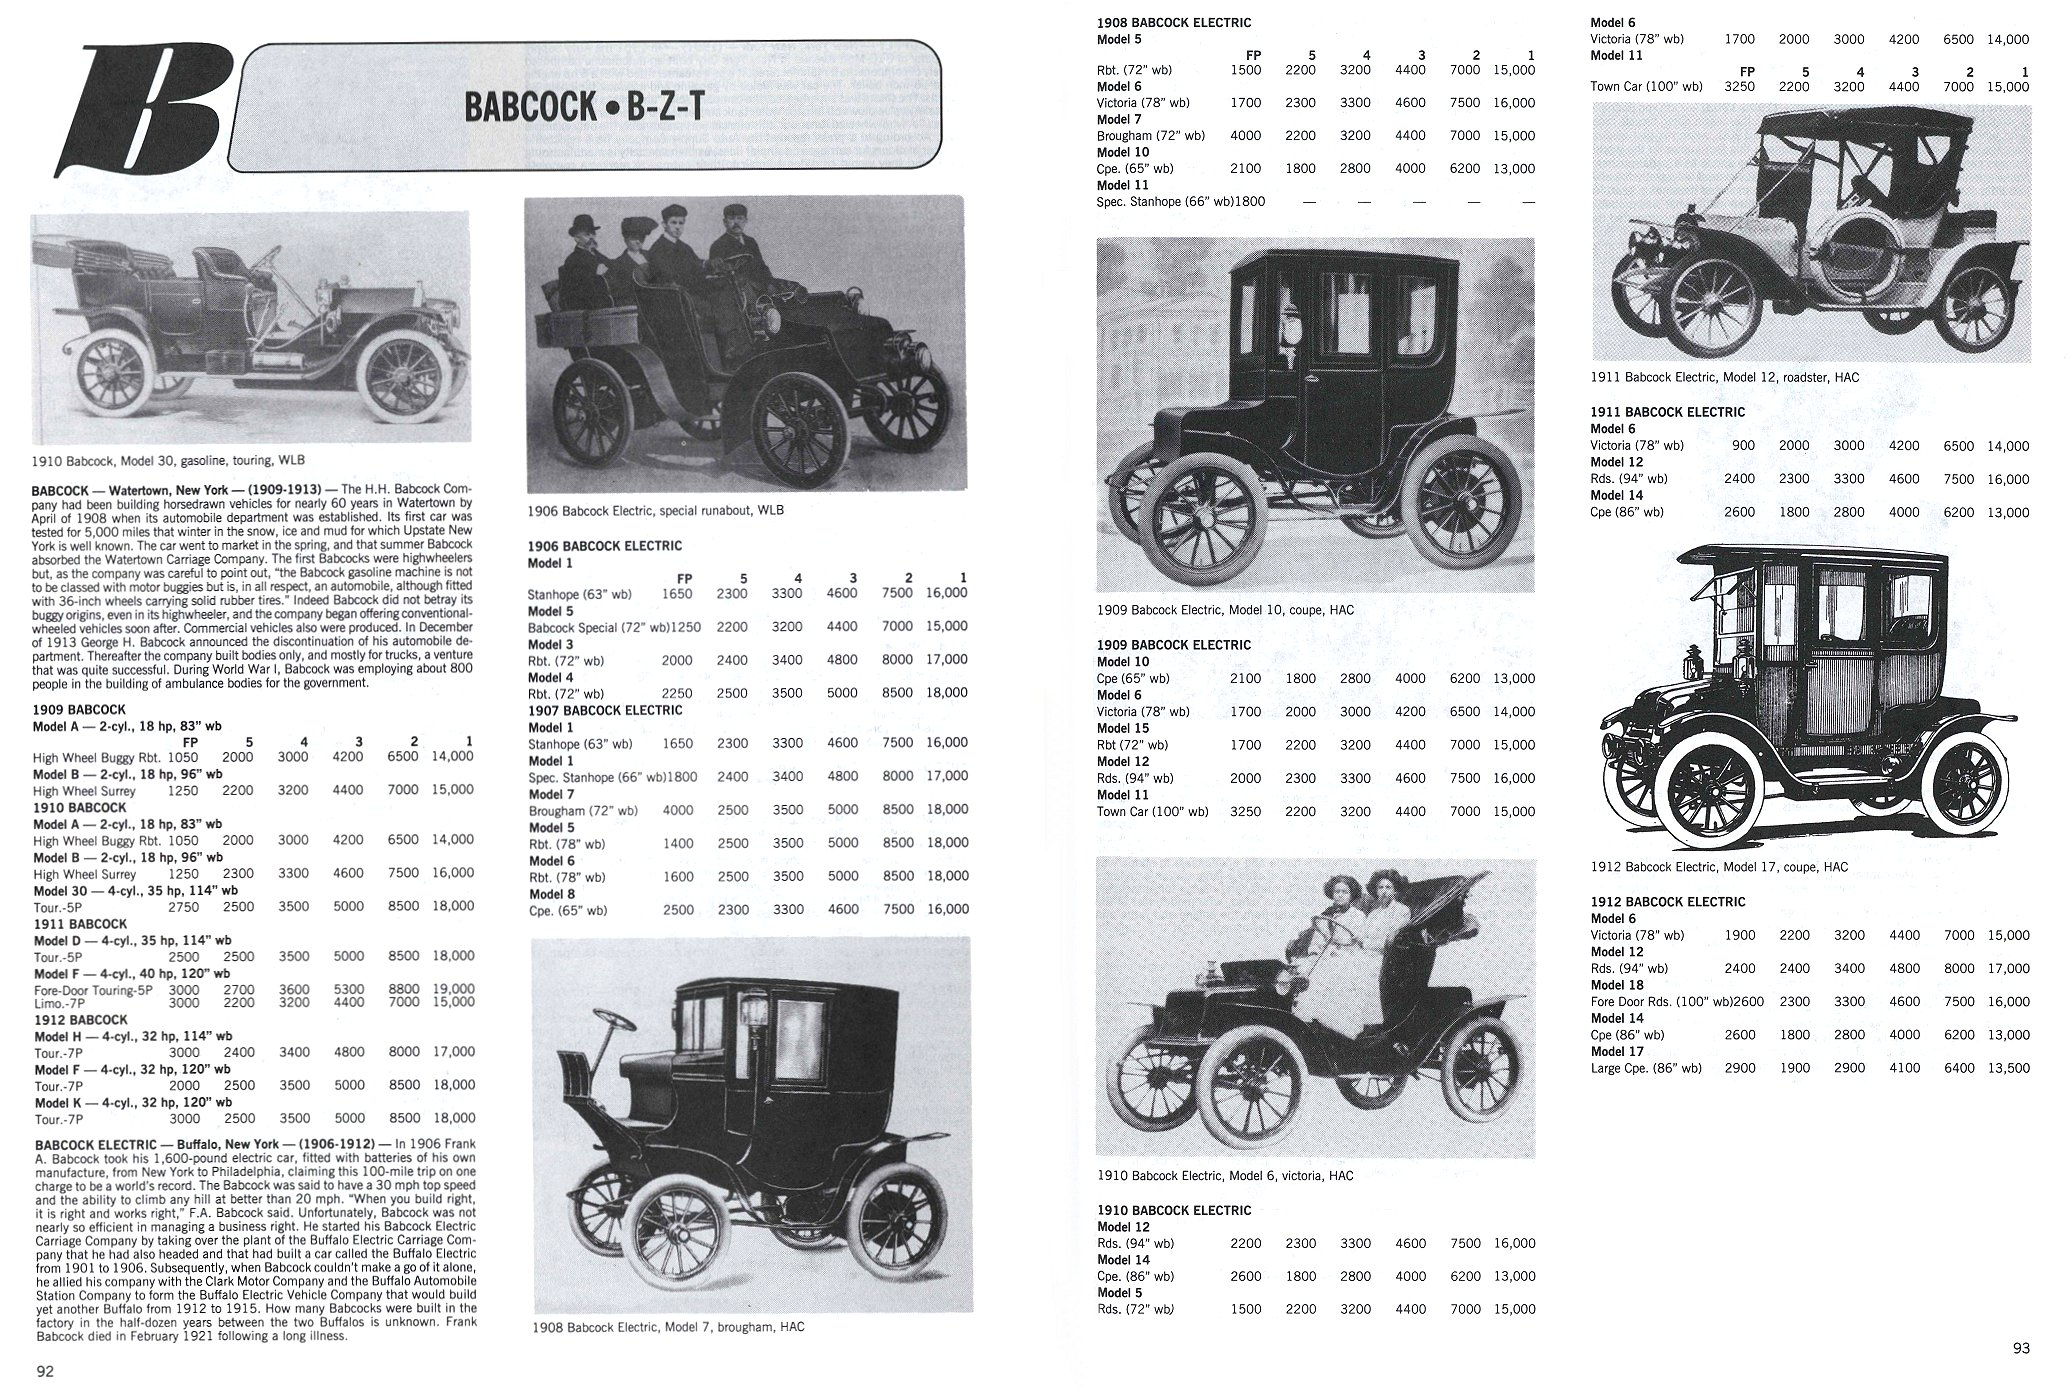 BABCOCK Electric Buffalo, New York 1906-1912 Standard Catalog of AMERICAN CARS 1805-1942 By Beverly Rae Kimes & Henry Austin Clark, Jr. Krause Publications ISBN: 0-87341-428-4 8.5″x11″ page 92